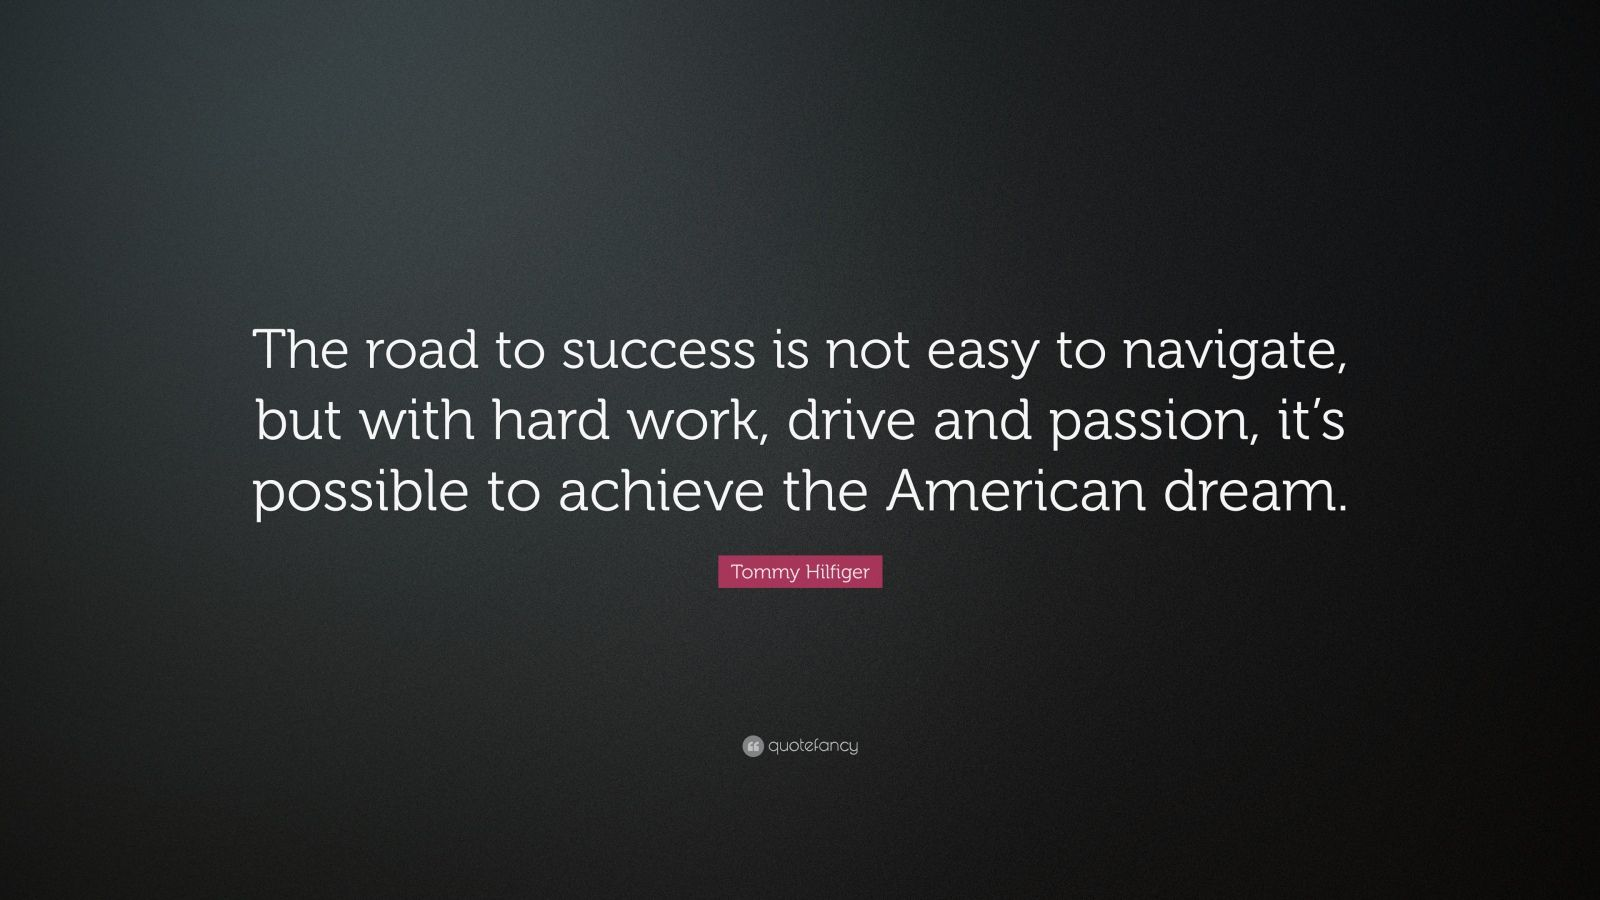 Motivational Quotes Iphone 7 Wallpaper Tommy Hilfiger Quote The Road To Success Is Not Easy To